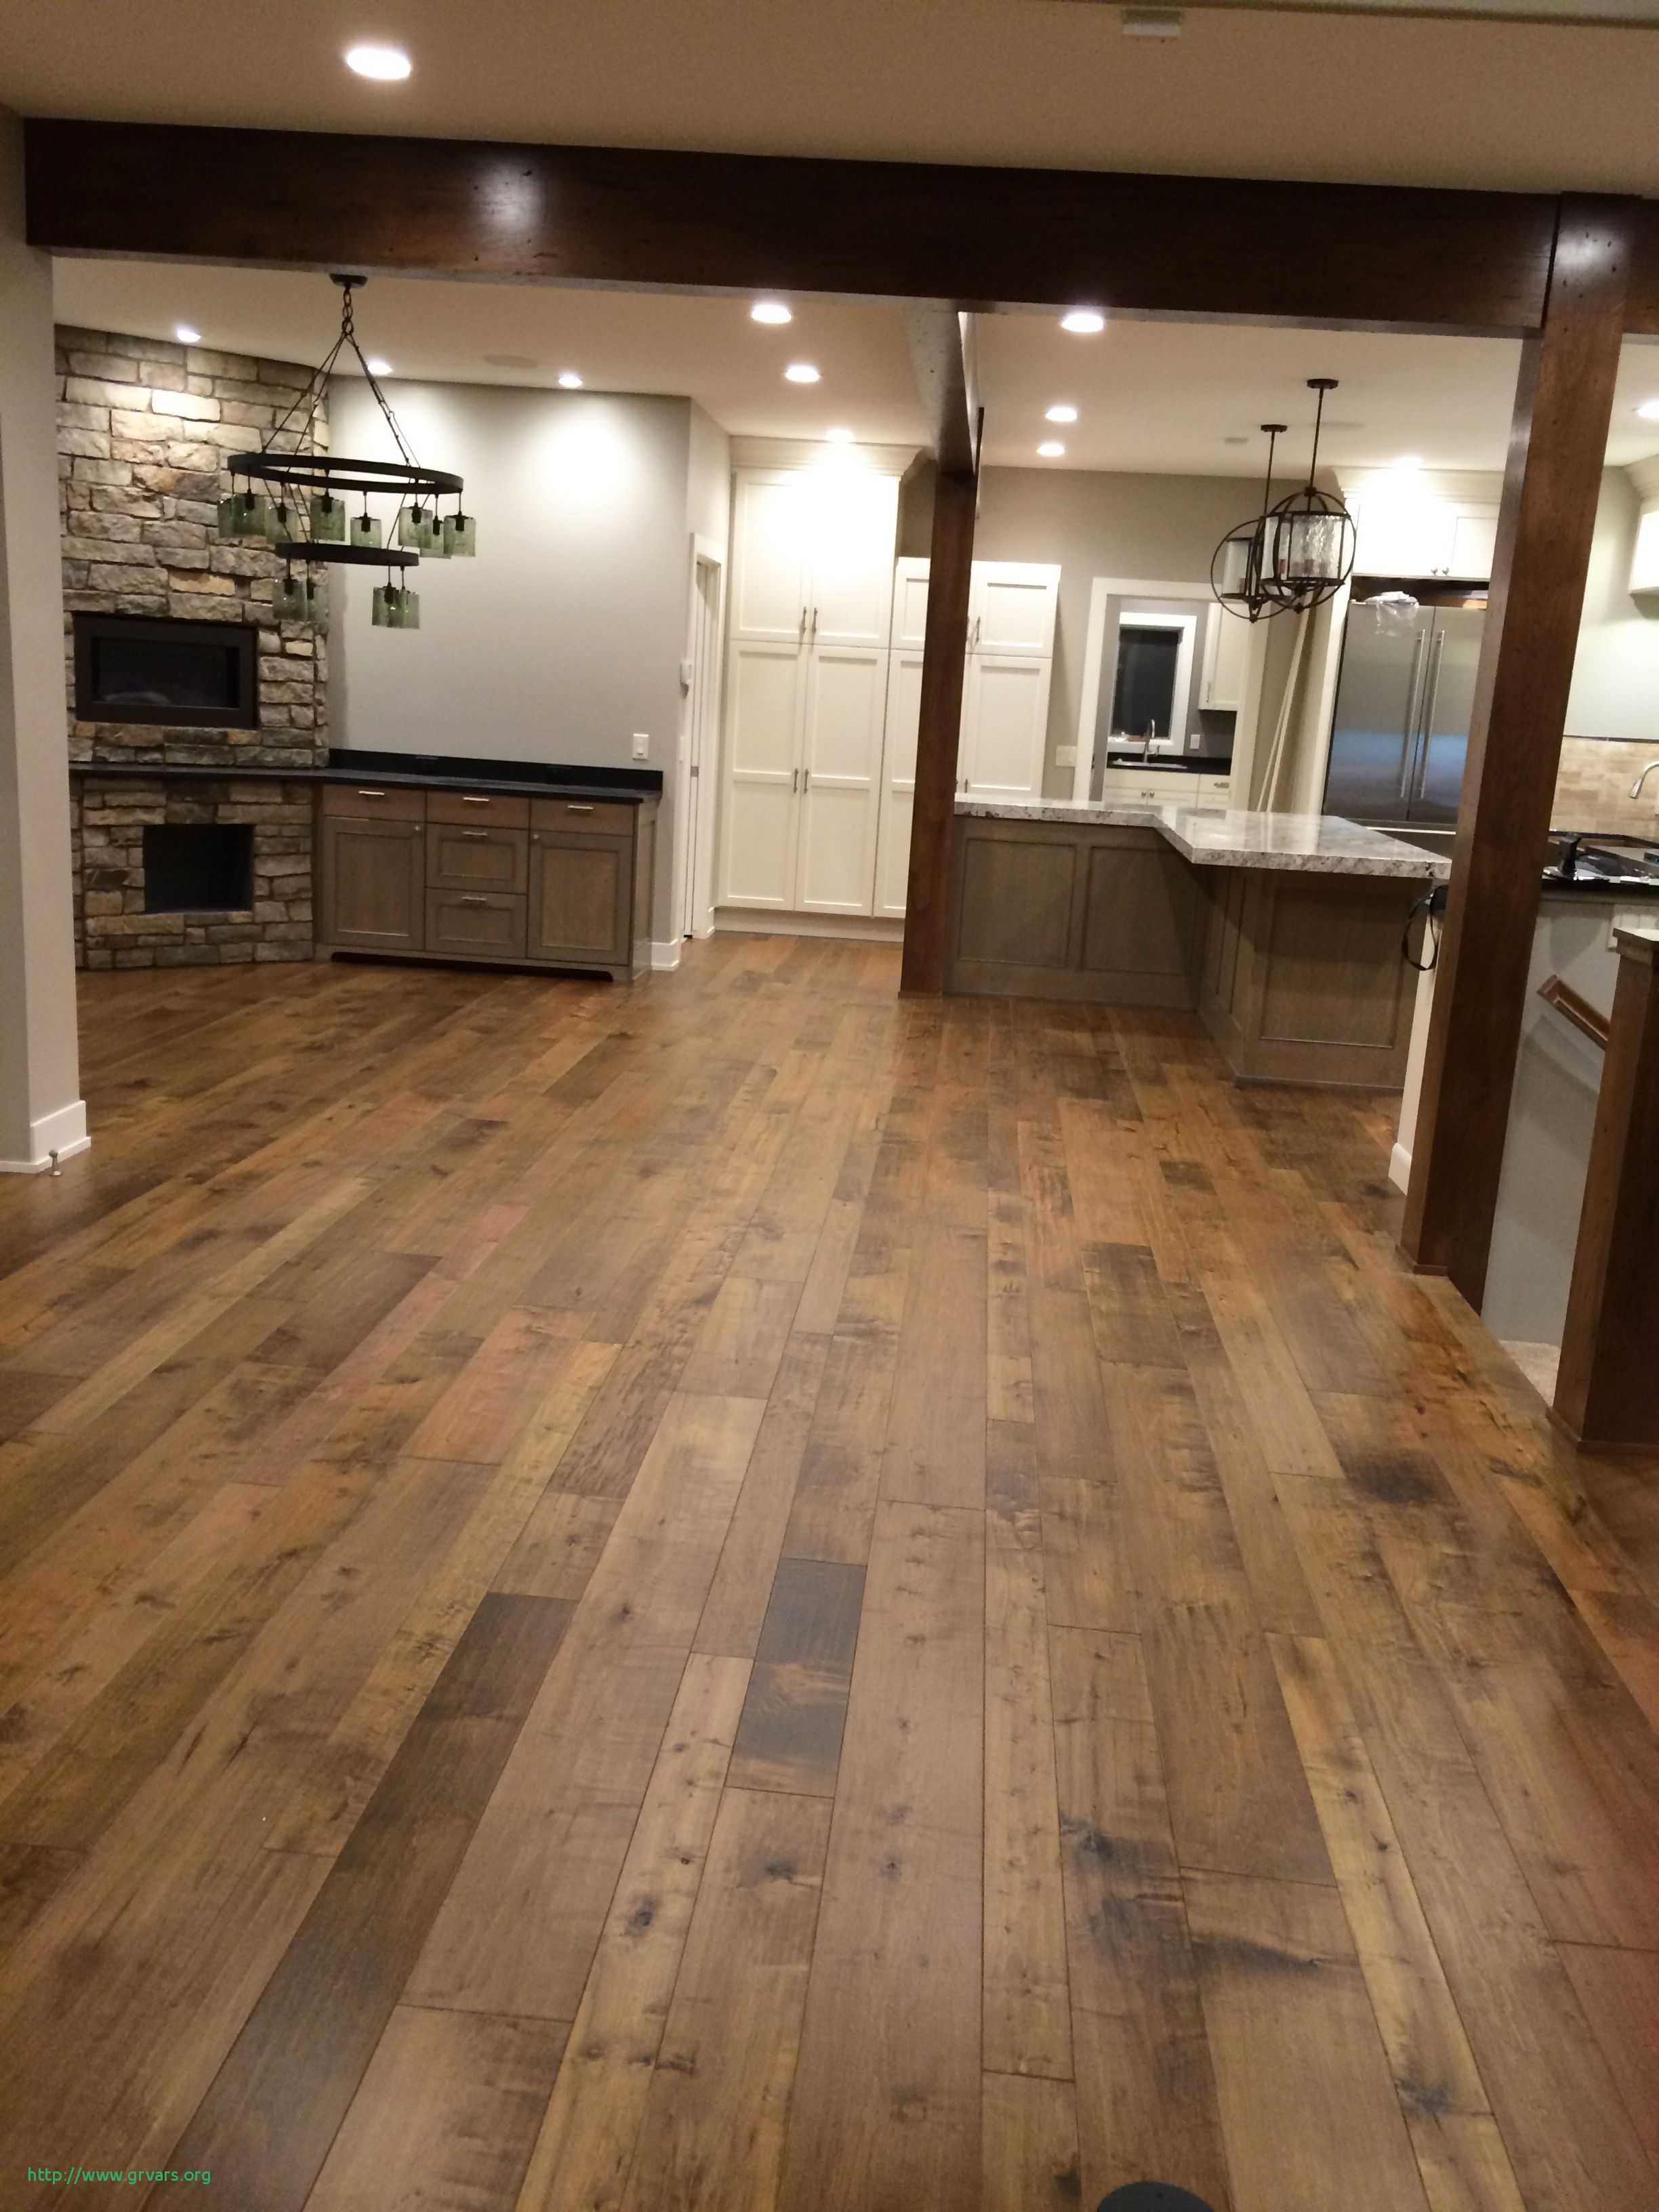 quality hardwood floors inc of 16 nouveau premier floors inc ideas blog in premier floors inc charmant monterey hardwood collection rooms and spaces